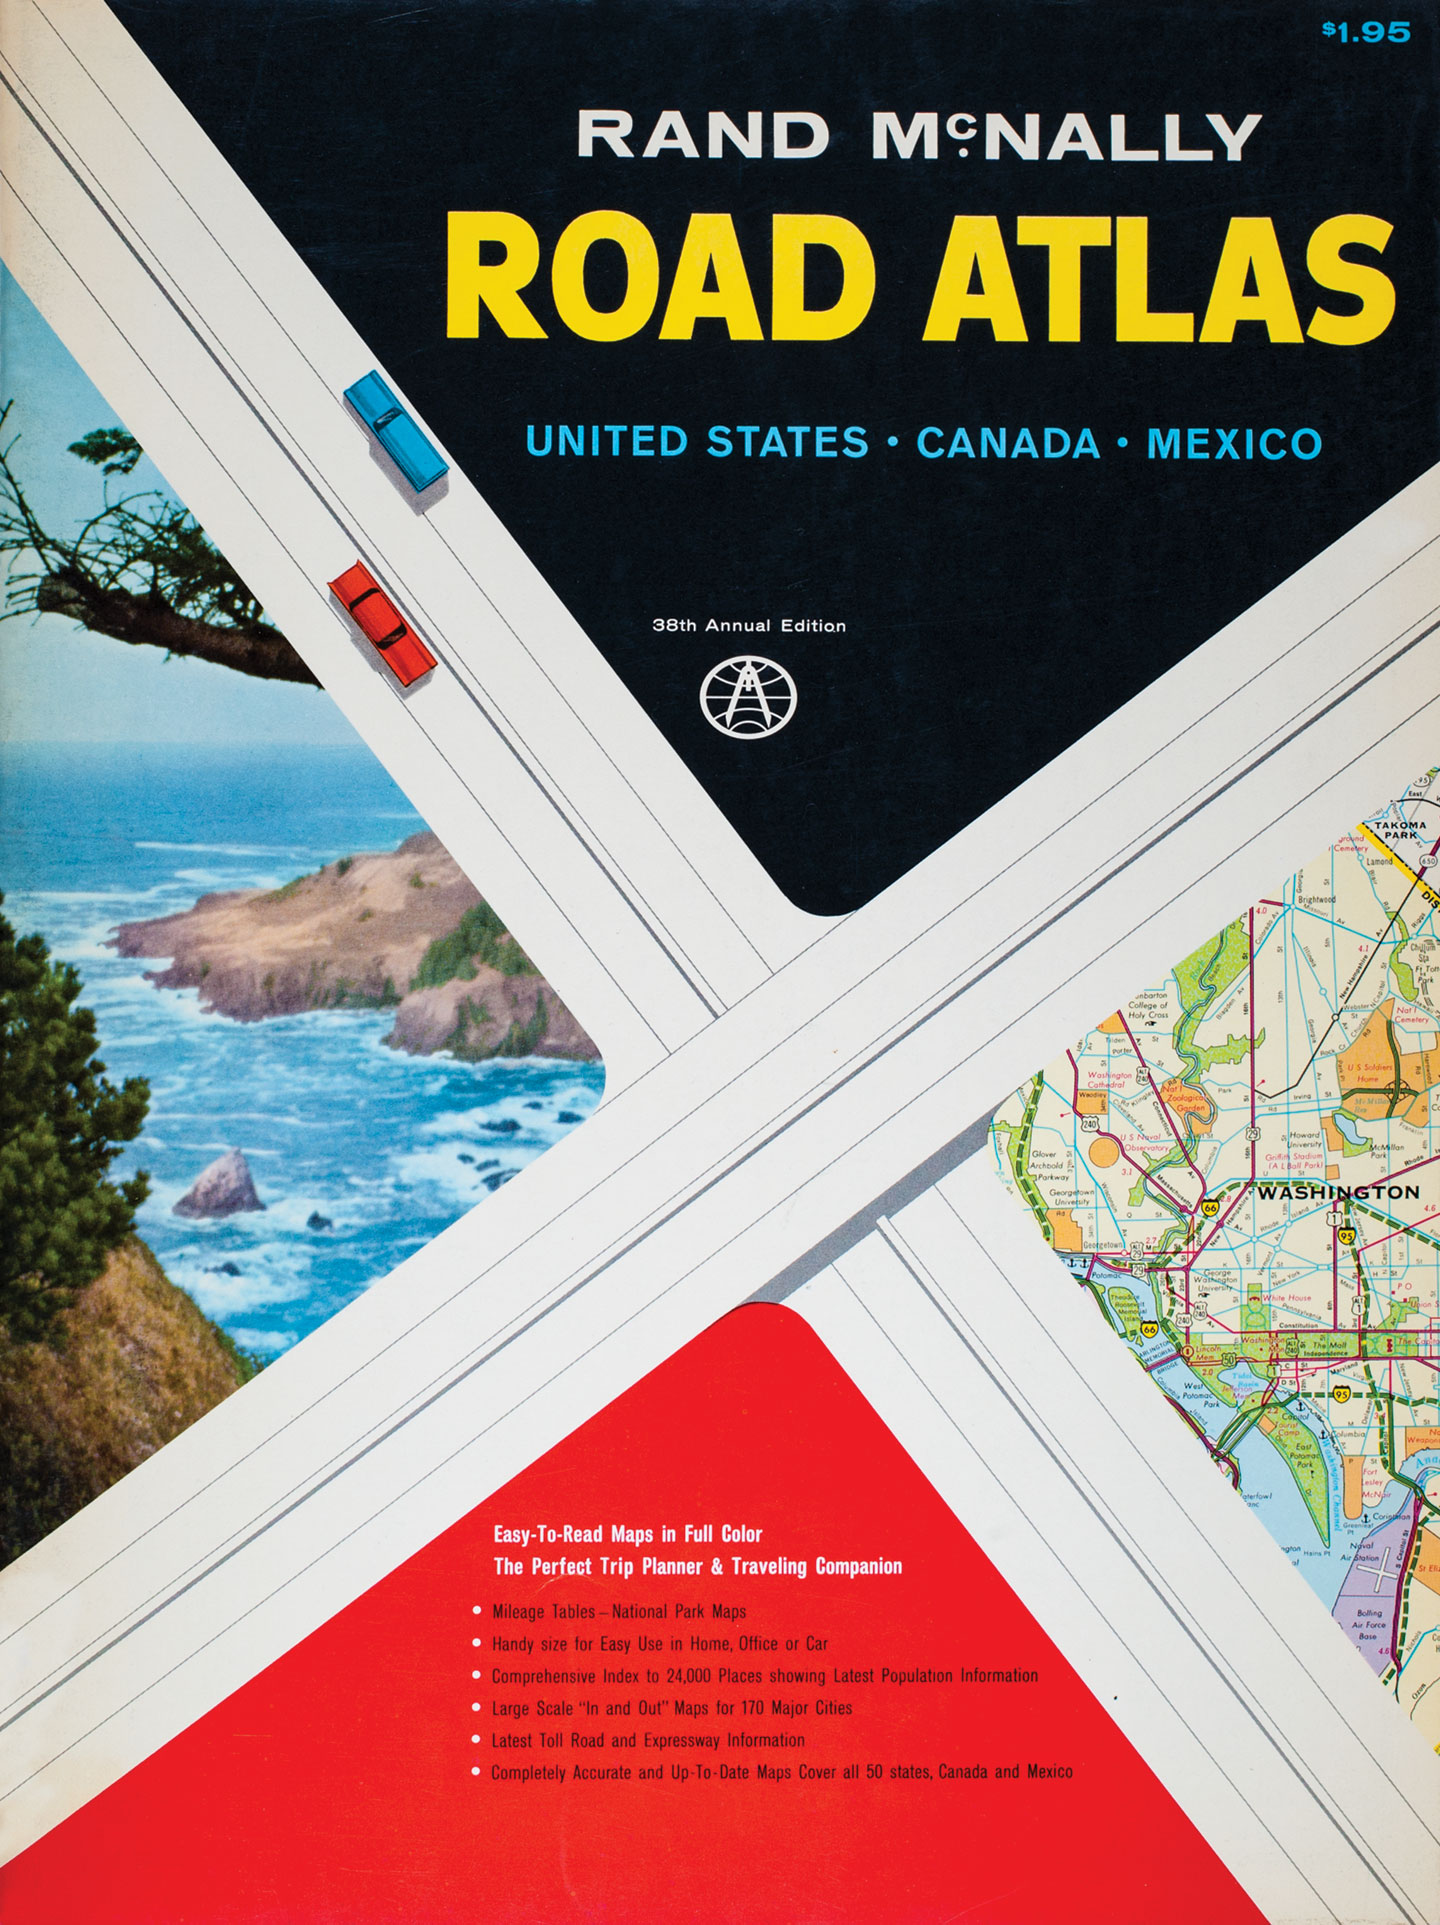 Cheap Cars Com >> Rand McNally | Road Atlas 95th Anniversary